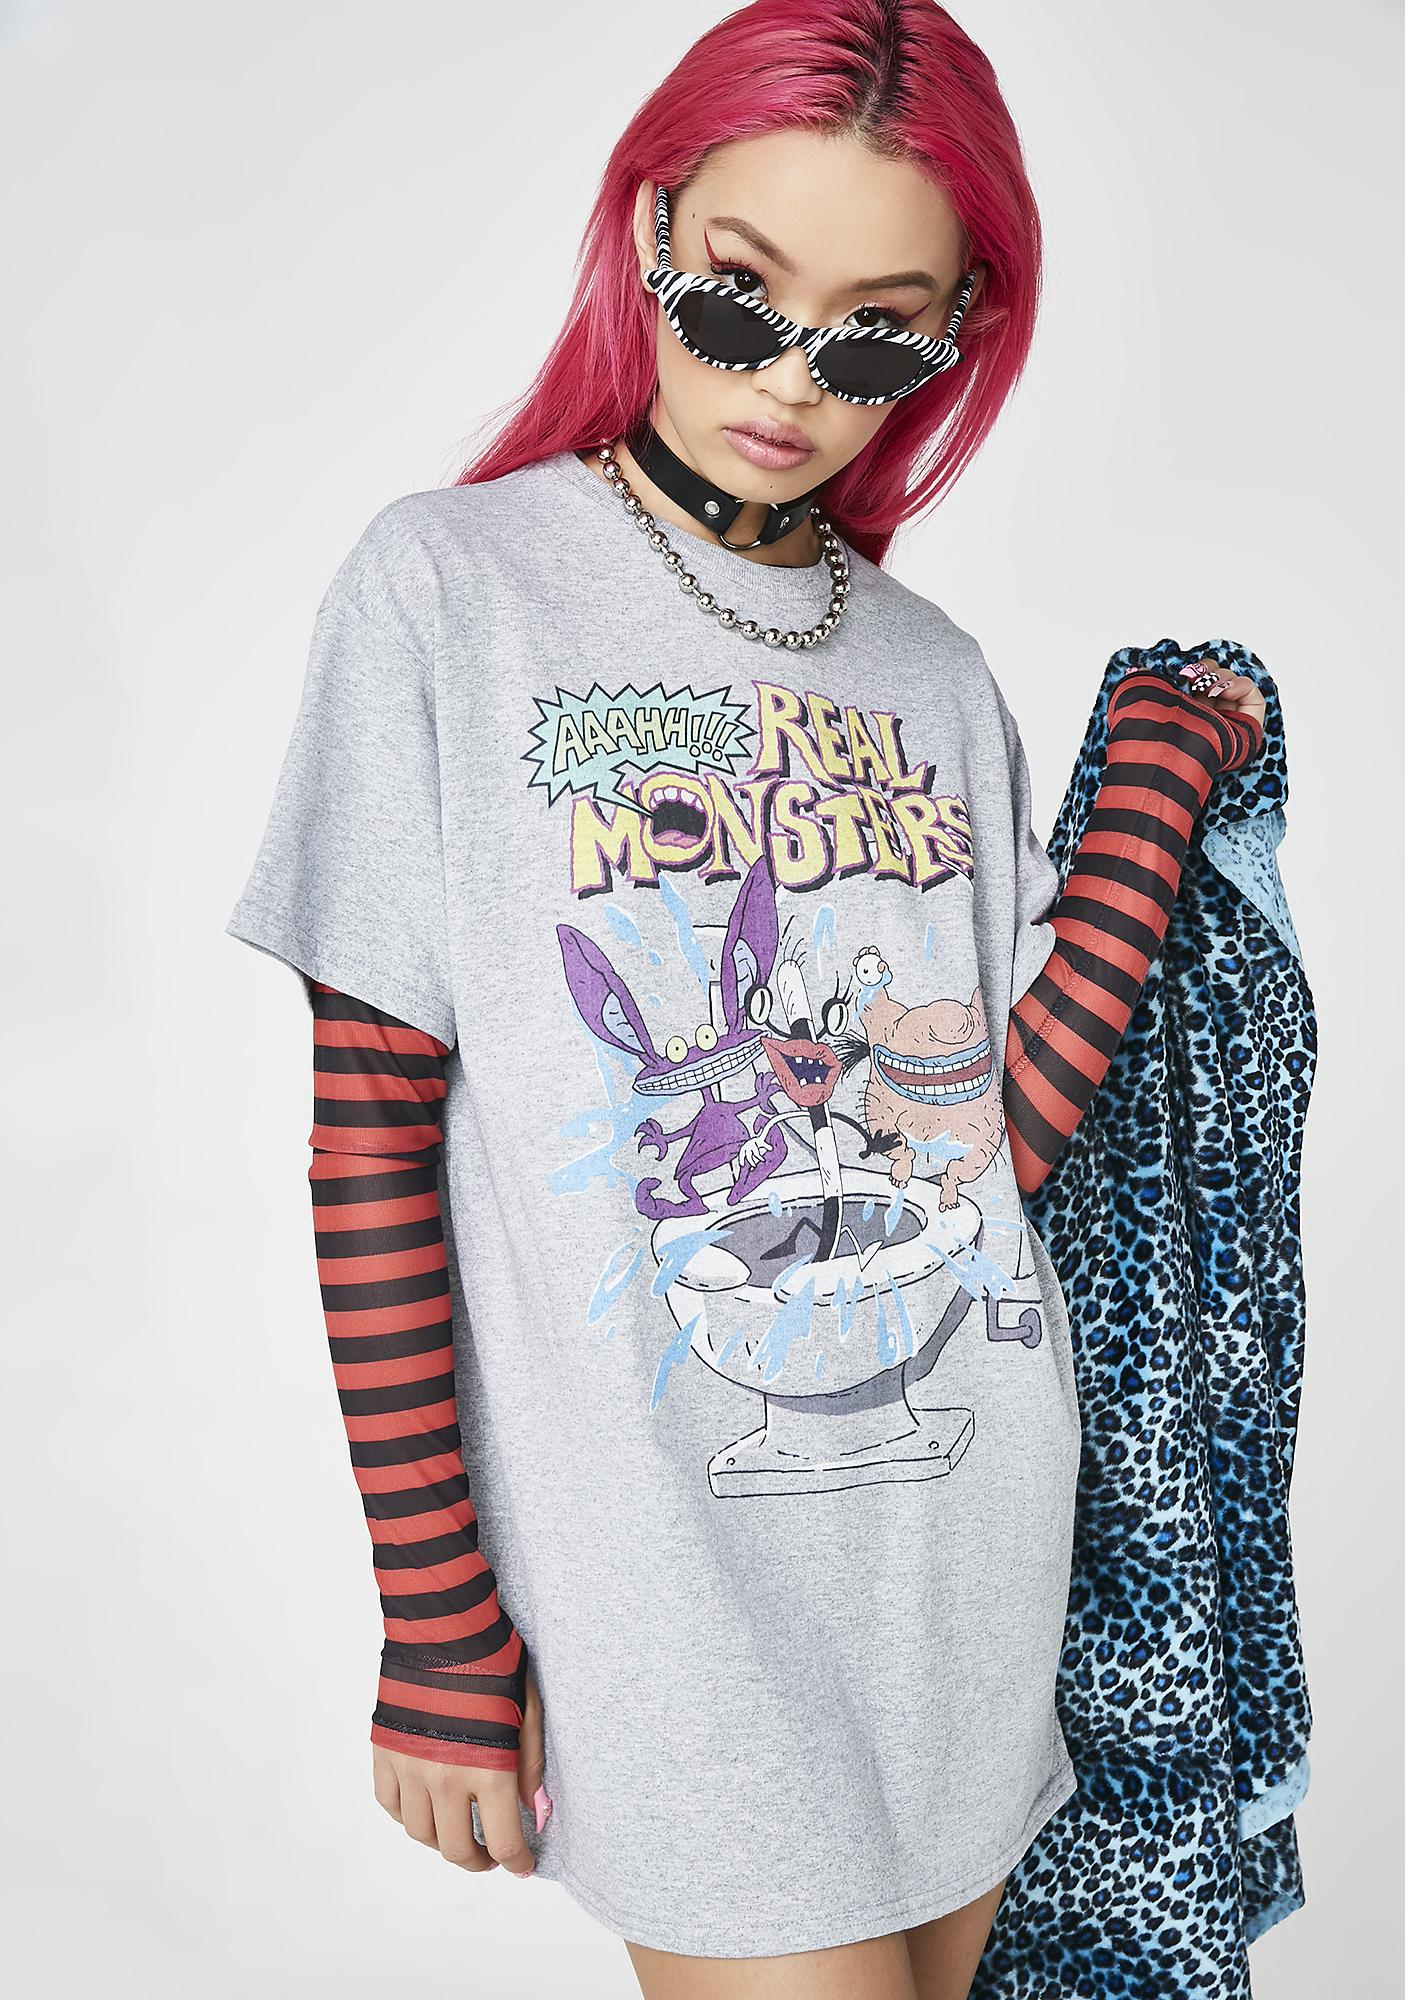 Ahh Real Monsters Graphic Tee